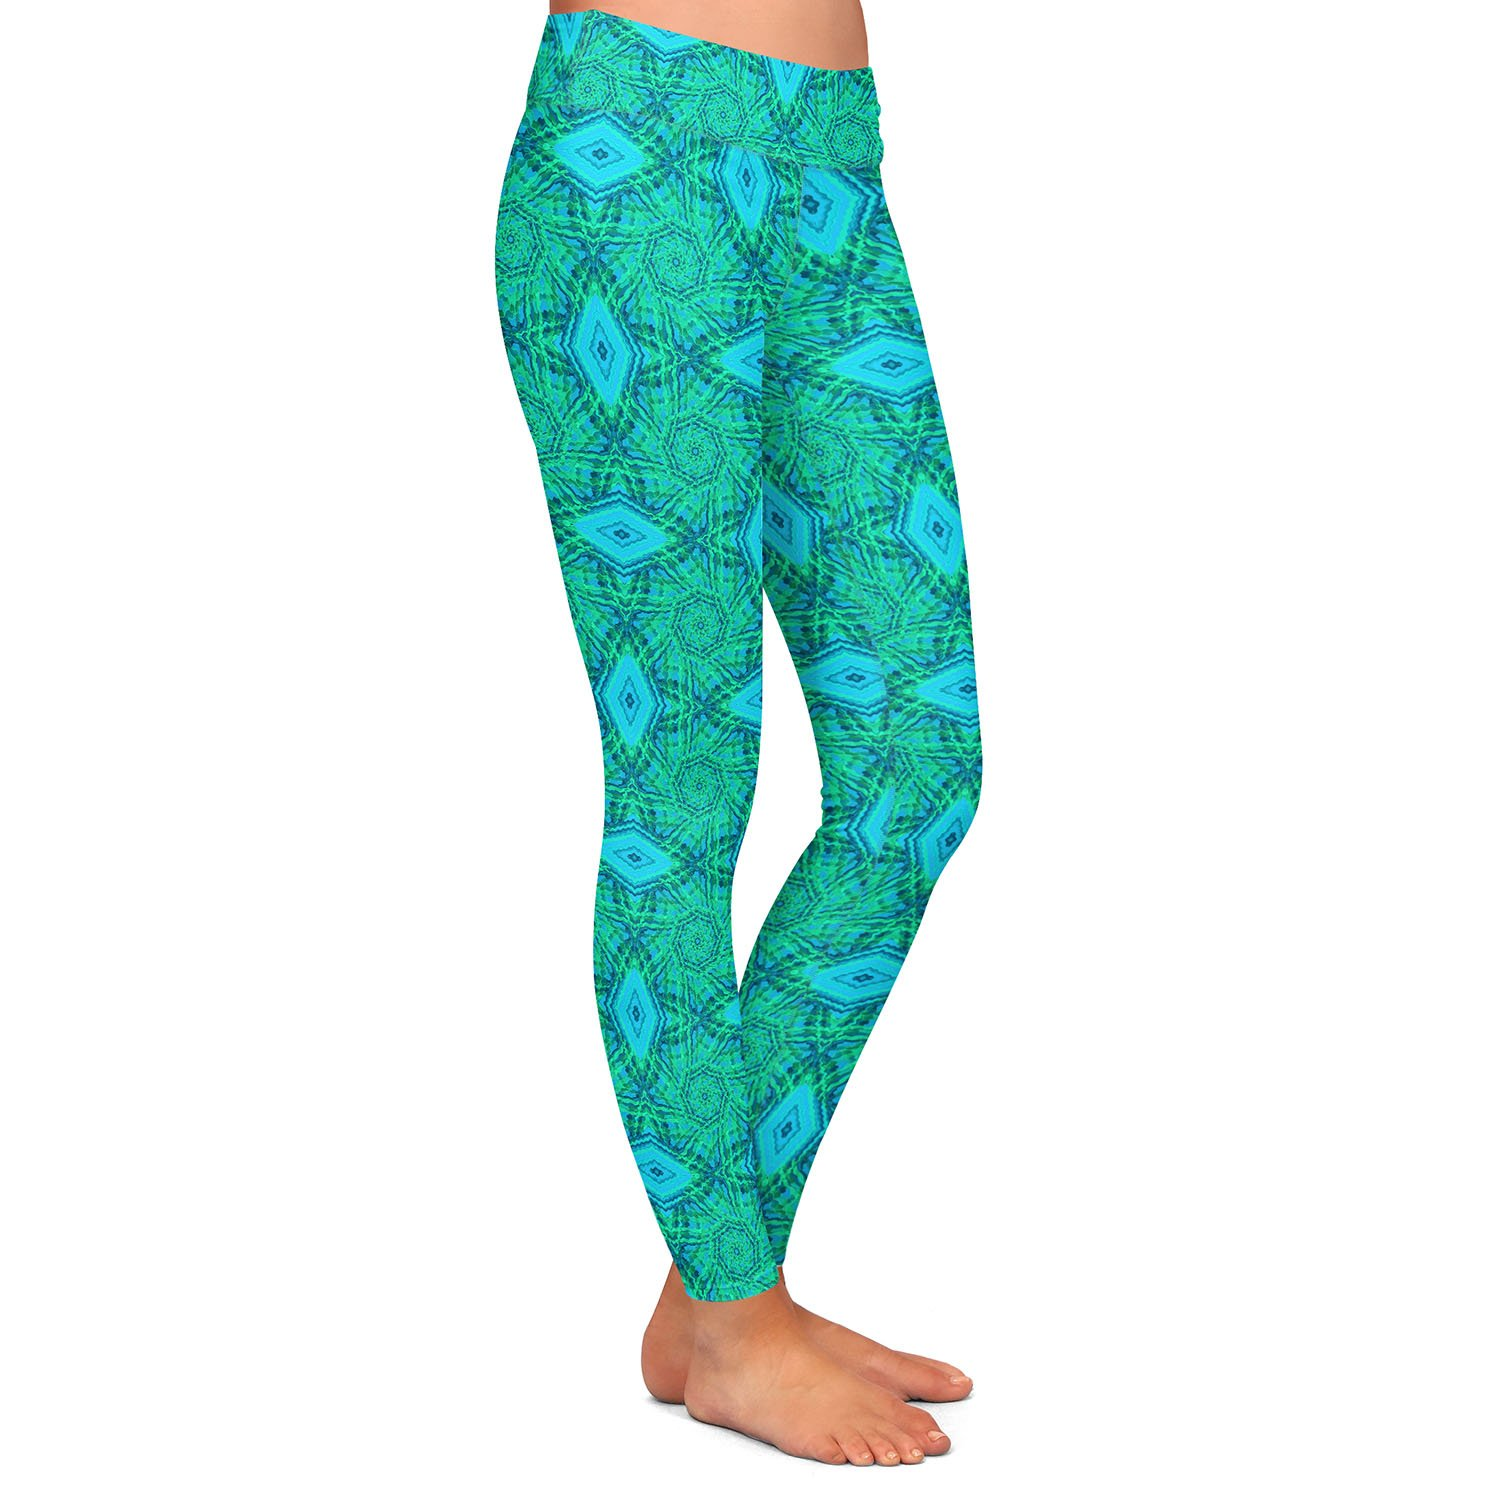 Athletic Yoga Leggings from DiaNoche Designs by Ruth Palmer Teal Diamonds